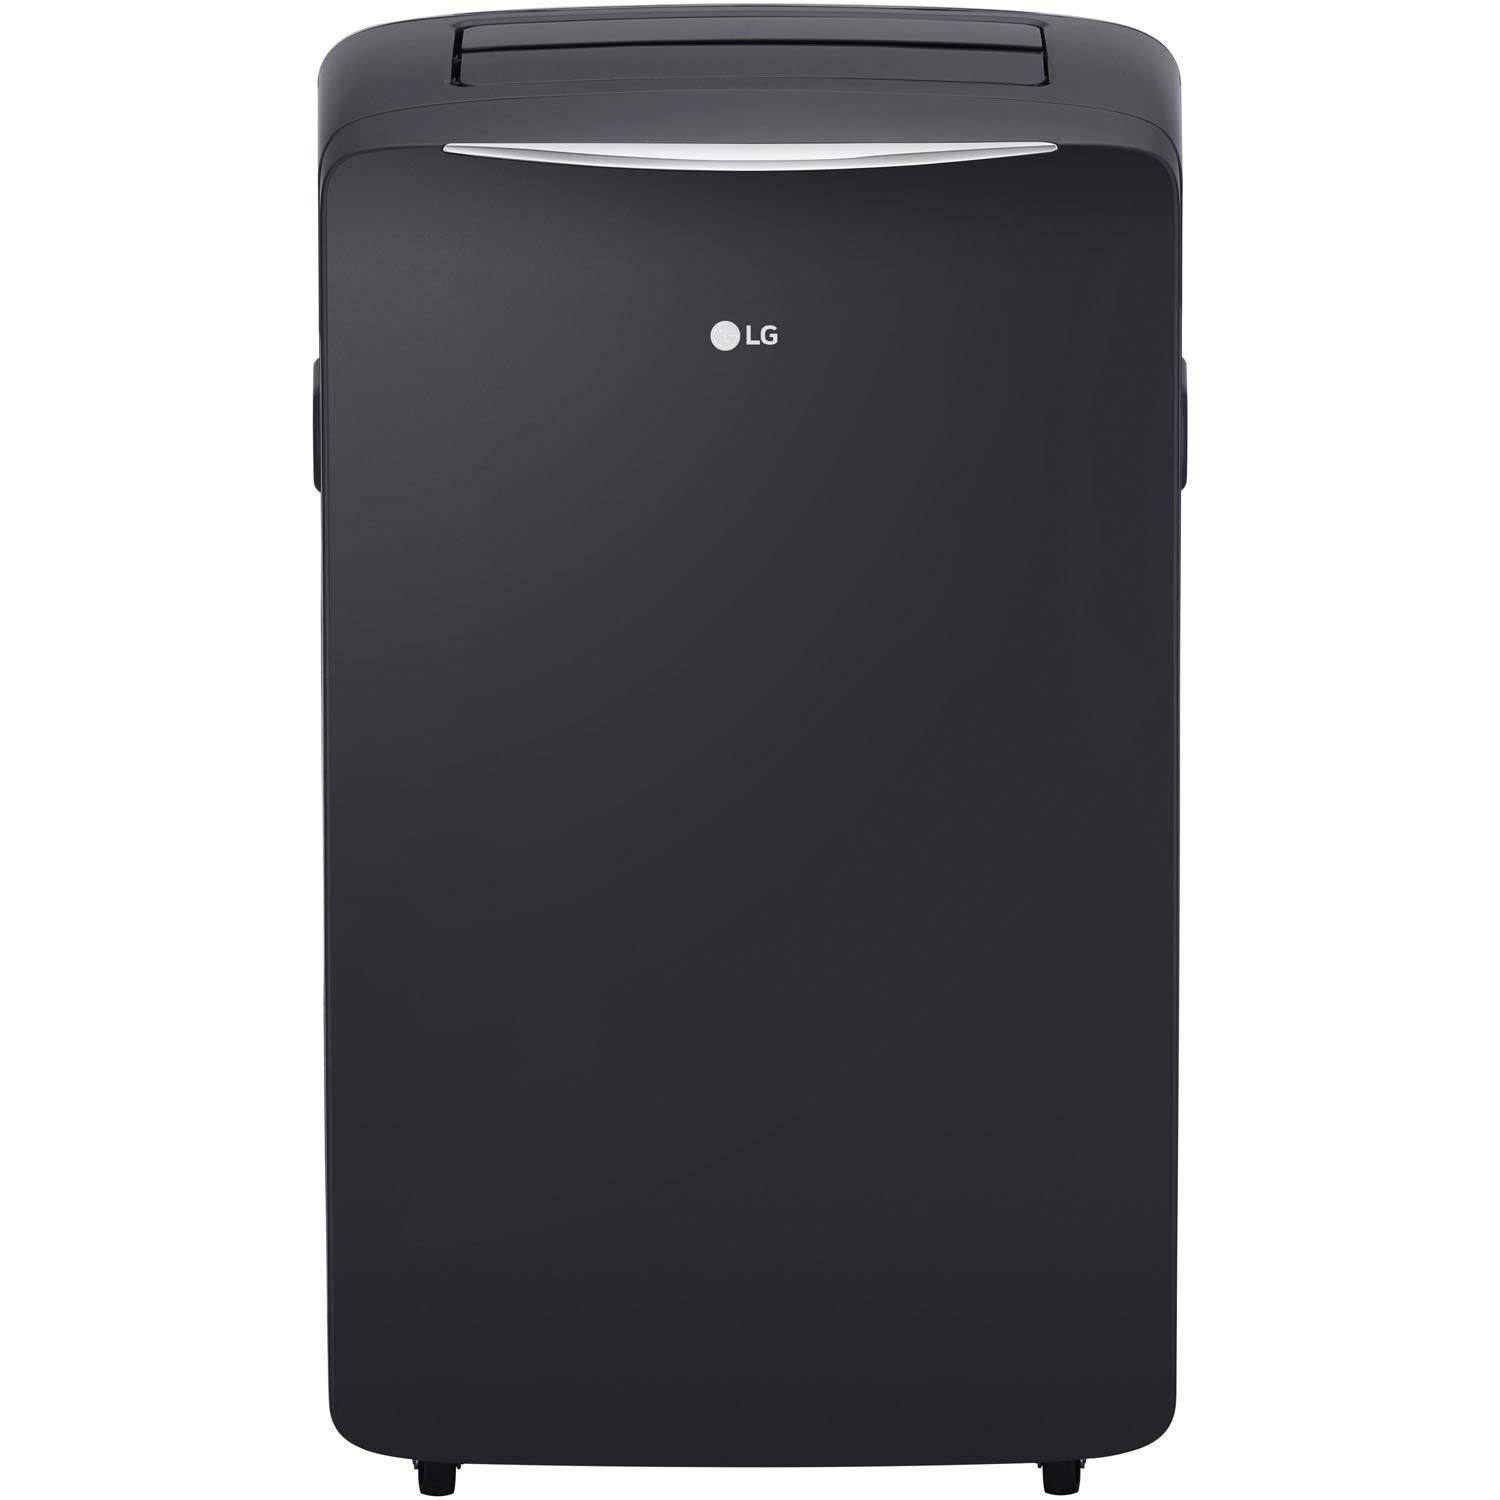 LG 115V Portable Air Conditioner with Remote Control, LP1417GSR